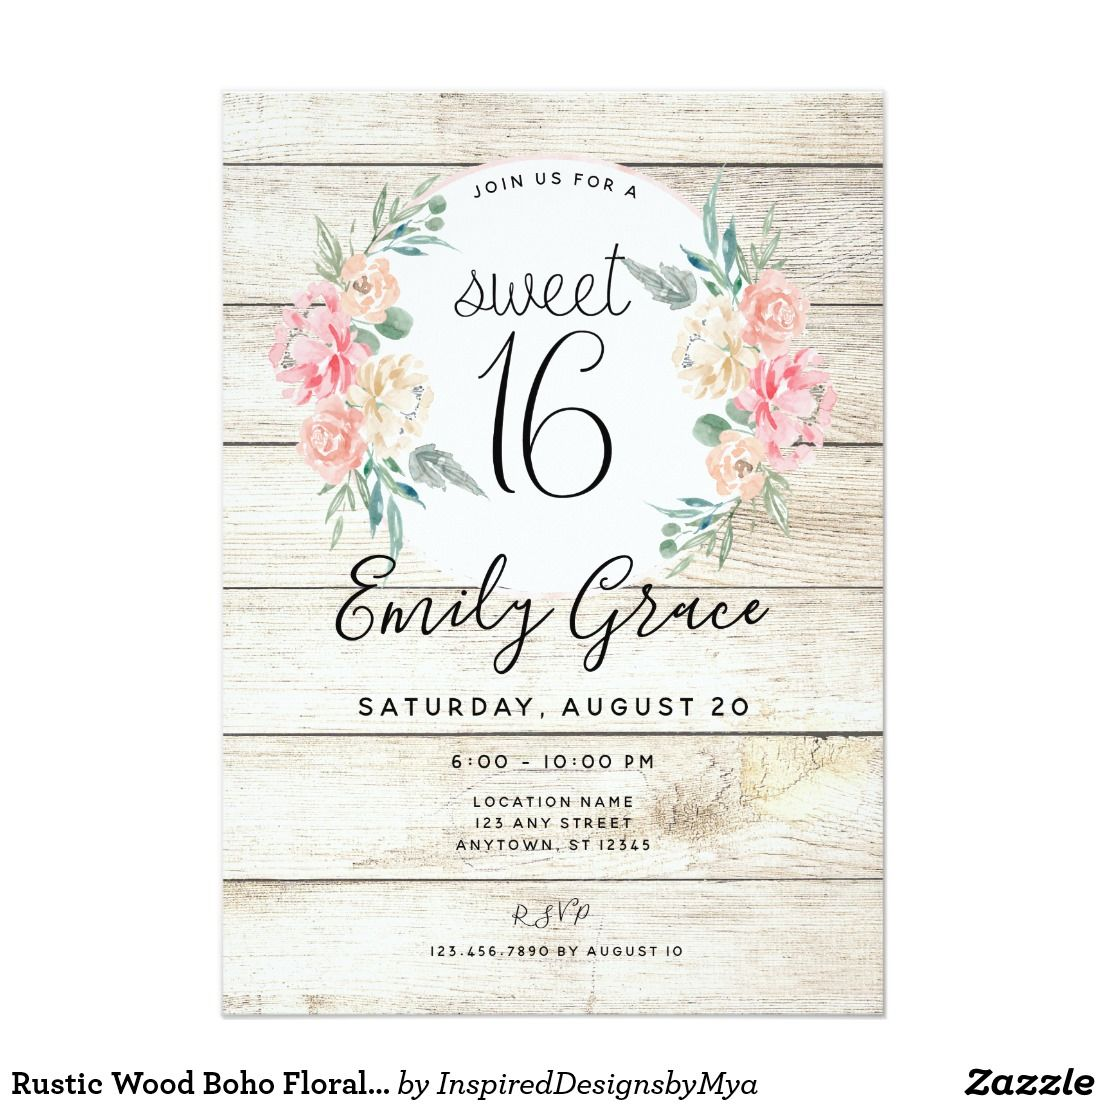 Rustic Wood Boho Floral Sweet 16 Birthday Invite | Zazzle.com #sweet16birthdayparty